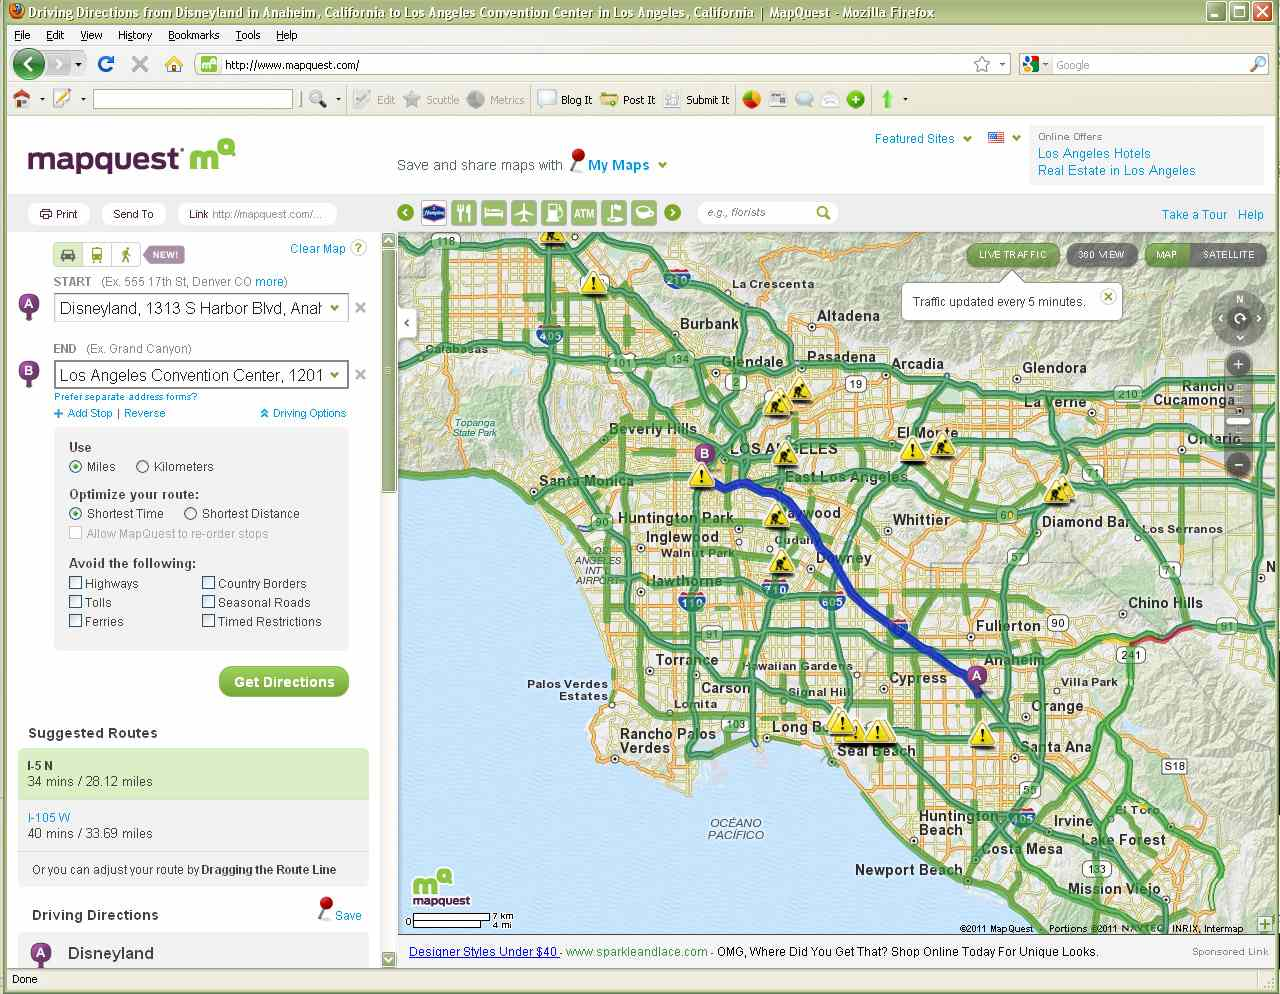 Best Los Angeles Traffic Maps and Directions Google Map Los Angeles on google maps north platte, google maps dubai, google maps pensacola, google maps los santos, google maps northeast usa, google maps catskills, google maps philly, google maps racine, google maps uk, google maps brownsville, google maps china, google maps eureka, google maps california, google maps pearland, google maps mira loma, google maps paris, google maps logo, google maps savannah, google maps mombasa, google maps car,